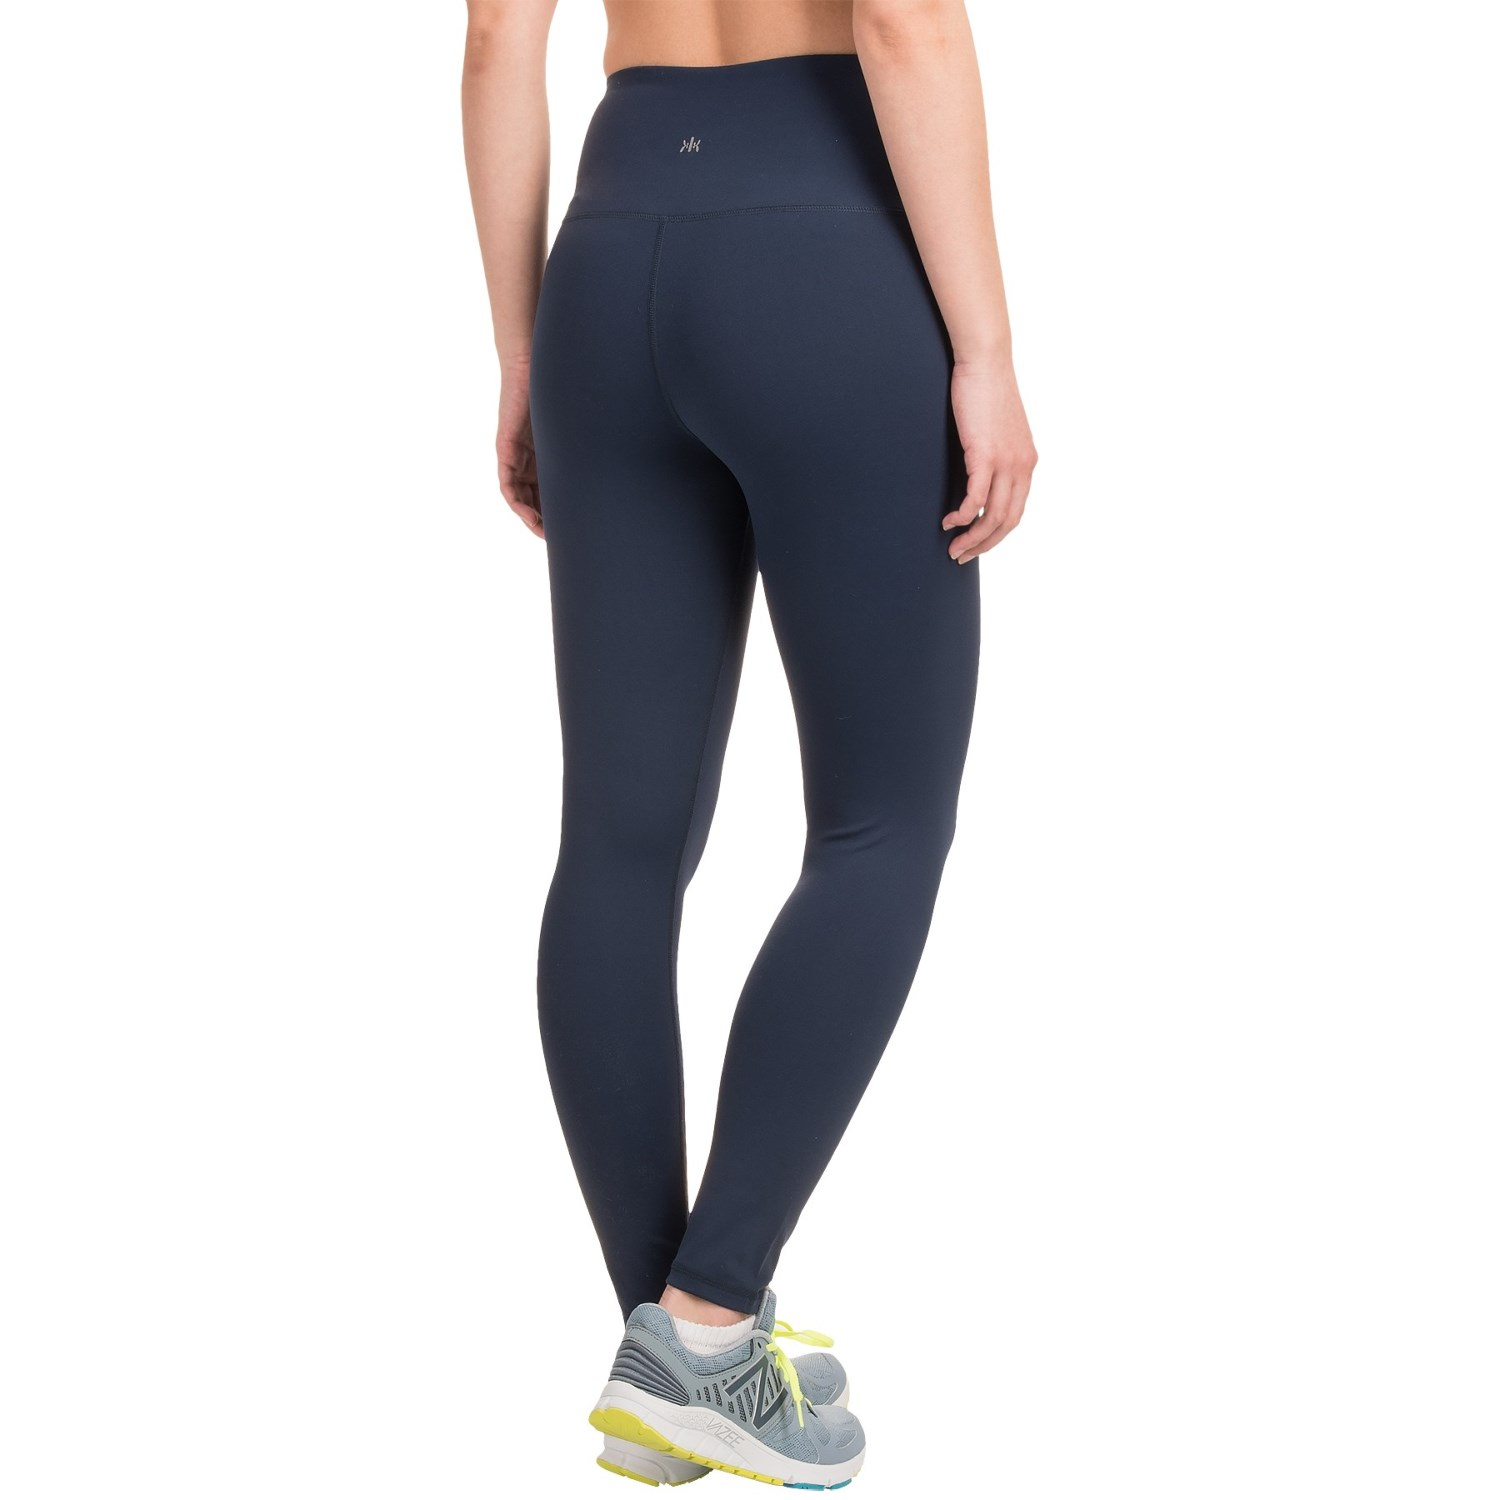 17f5989e54a5f2 Kyodan High-Waisted Leggings (For Women) - Save 42%